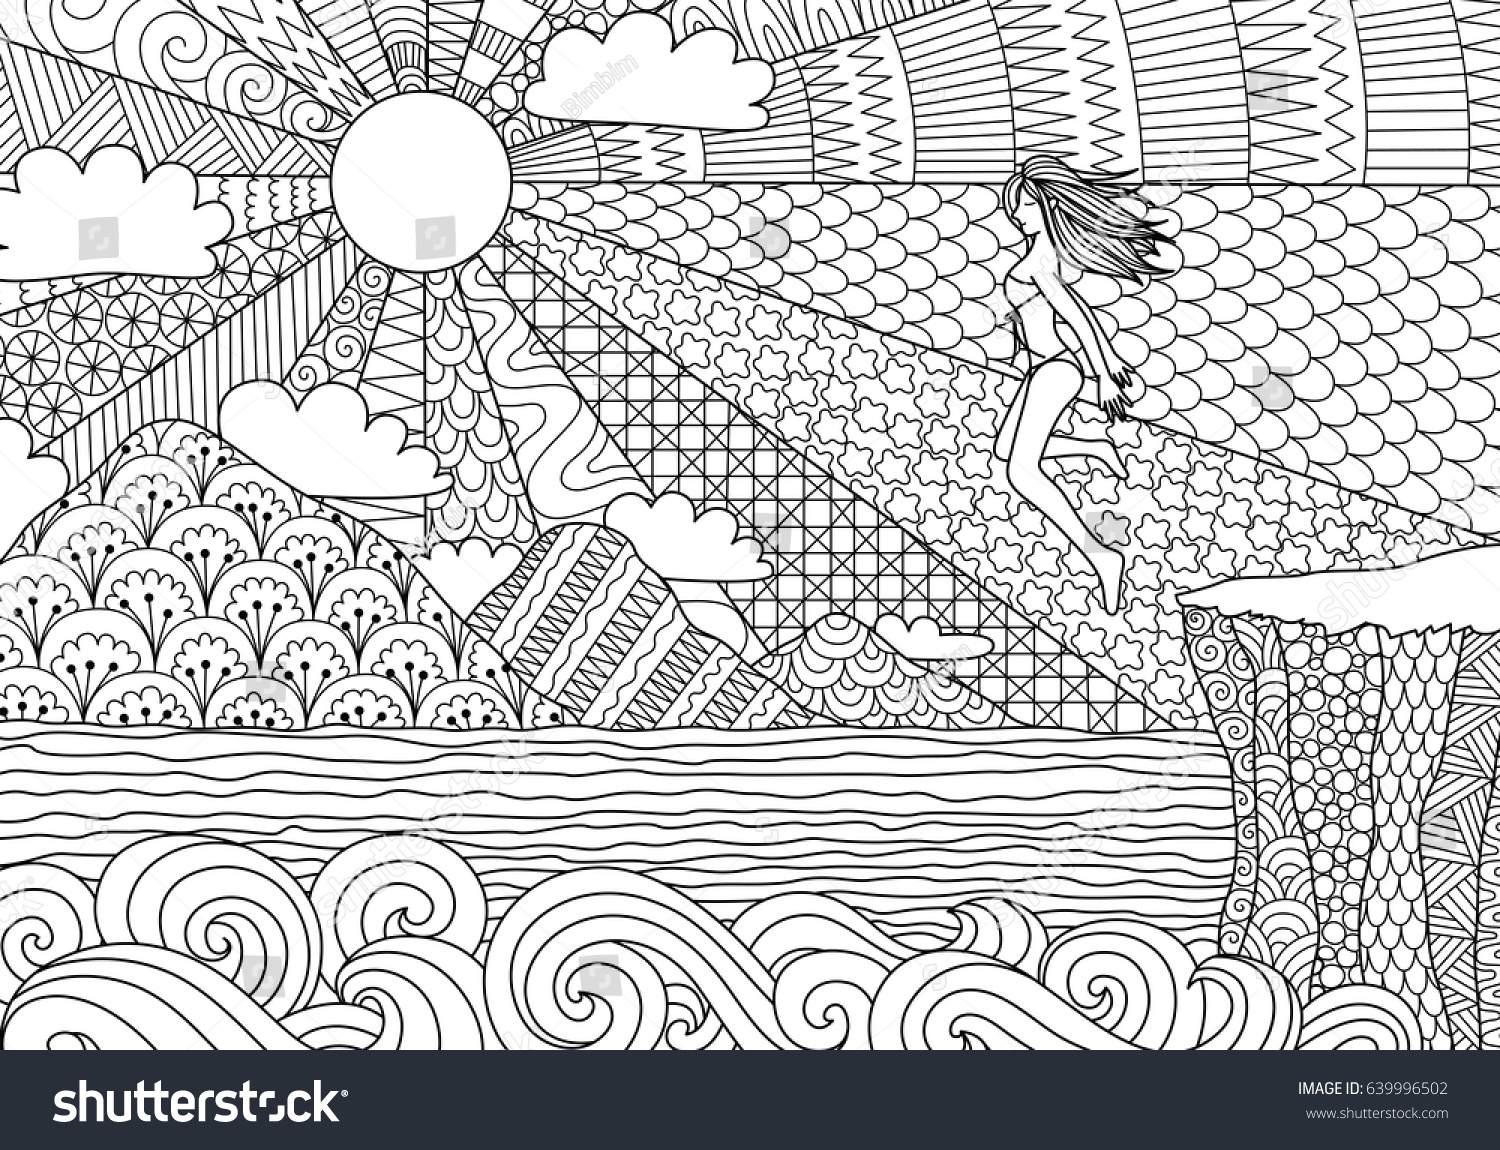 Sexy Bikini Girl Jump Over The Cliff To Beautiful Ocean For Illustration Adult Coloring